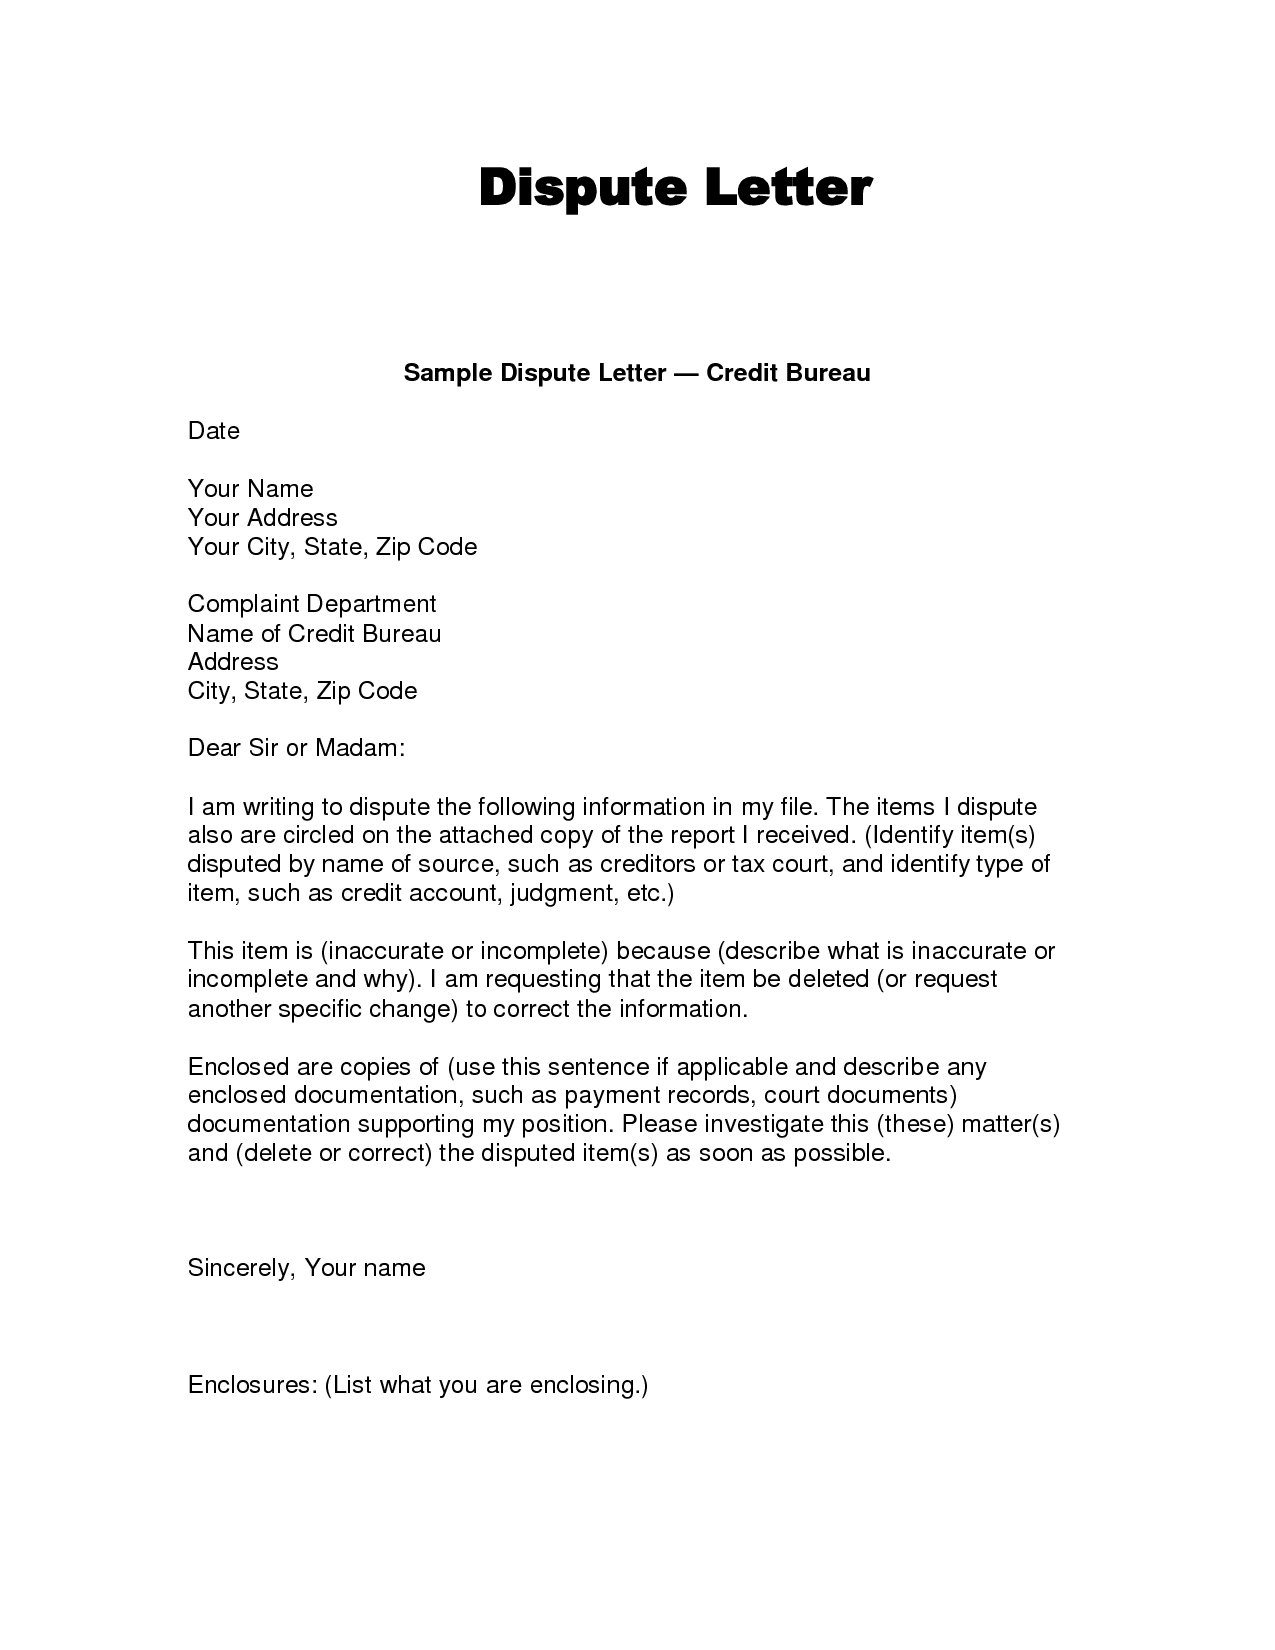 609 Dispute Letter to Credit Bureau Template - Credit Dispute Letter Templates Acurnamedia